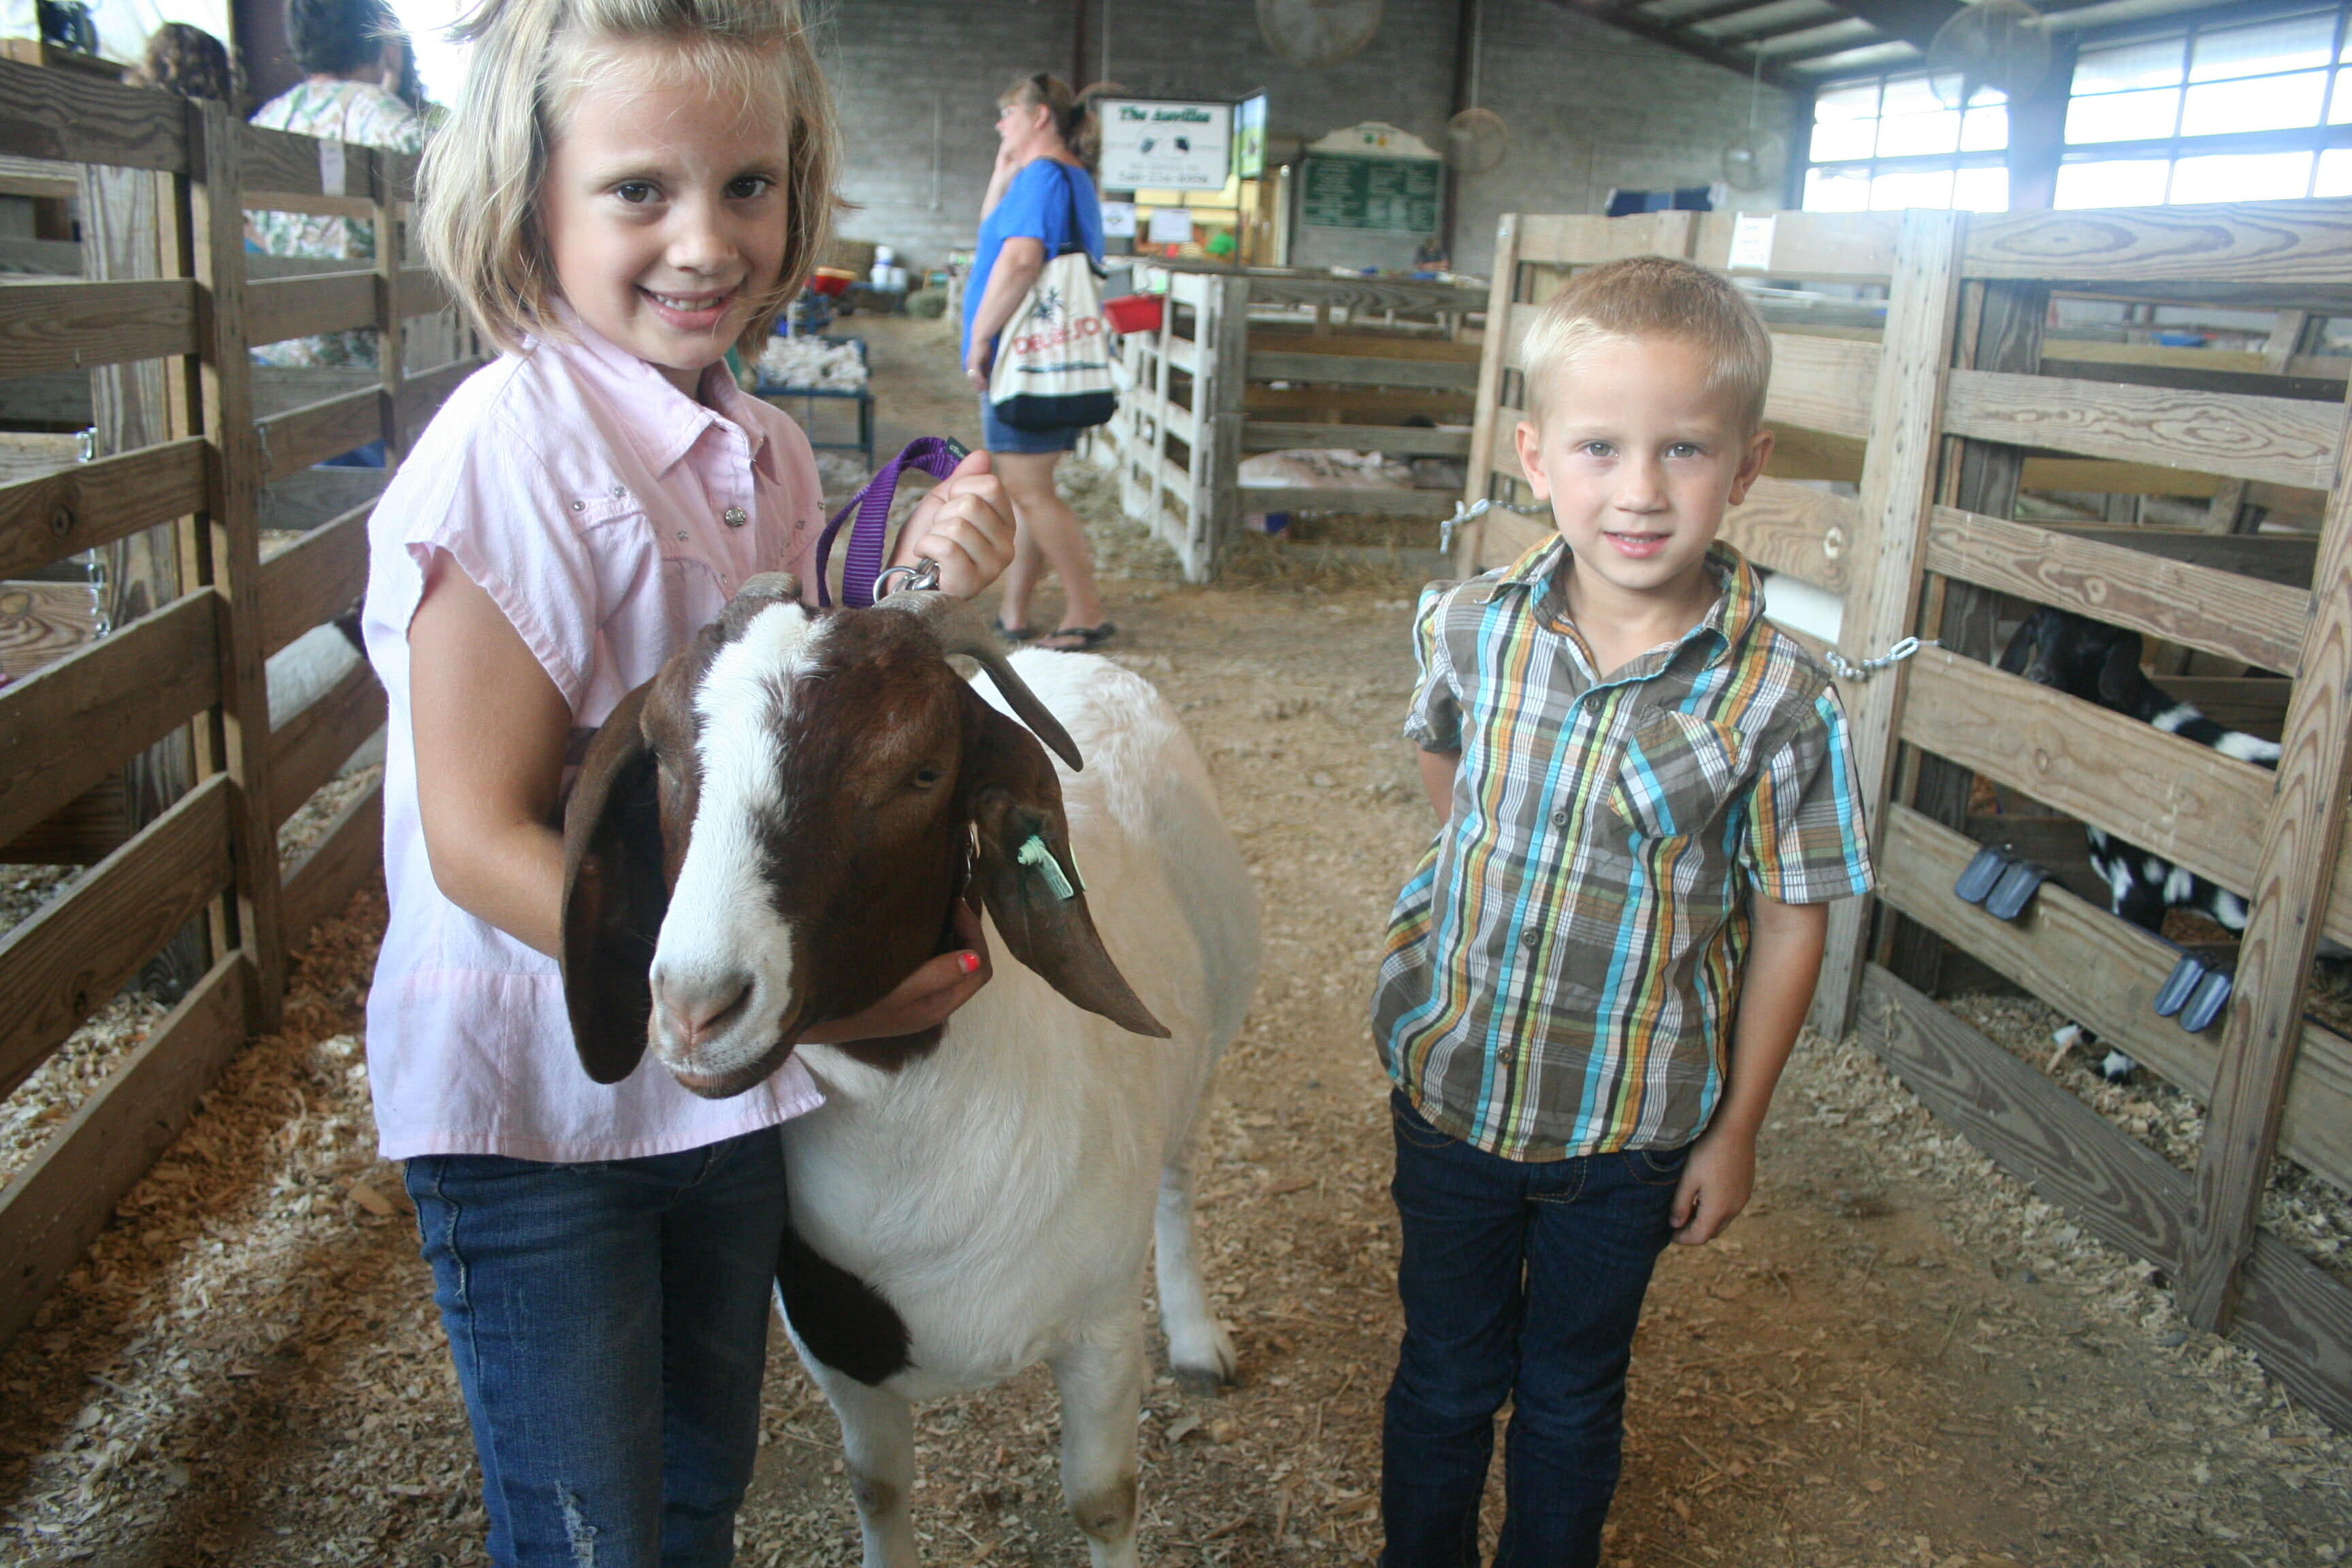 Alexis, 8, and Dillon, 4, Showalter pose with Deer Girl in the sheep and goat barn at the Rockingham County Fairgrounds. Jim Tom, Deer Girl's fair week nemesis, is visible on the right.